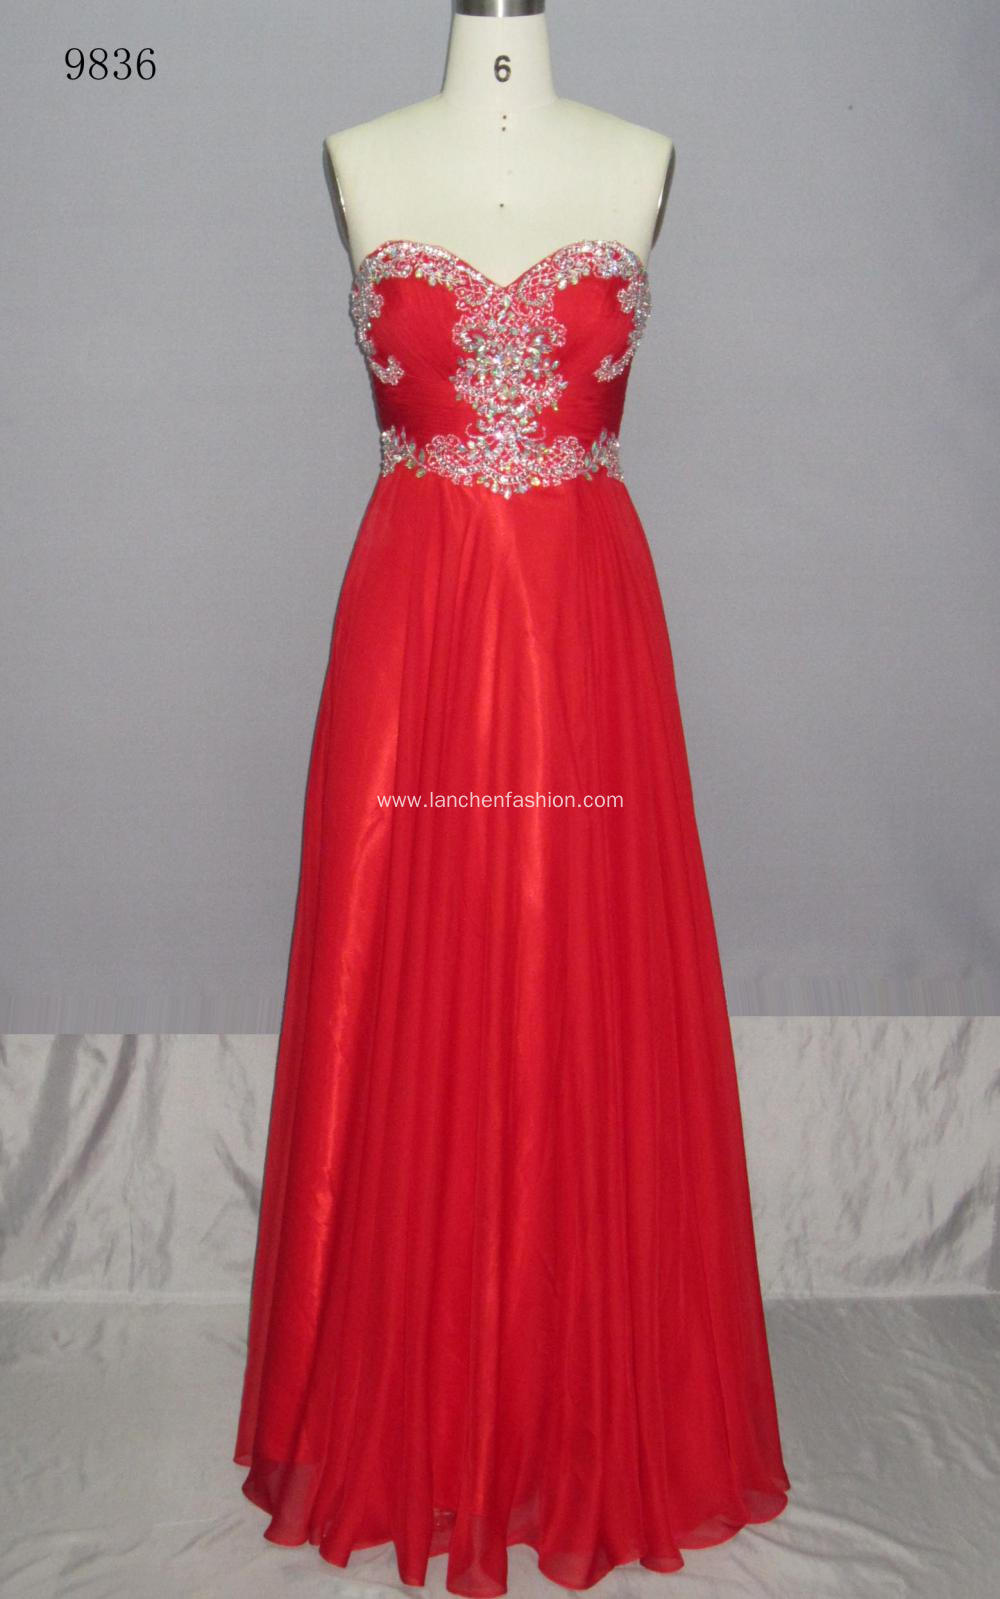 Sleeveless Elegant Halter Prom Maxi Dress